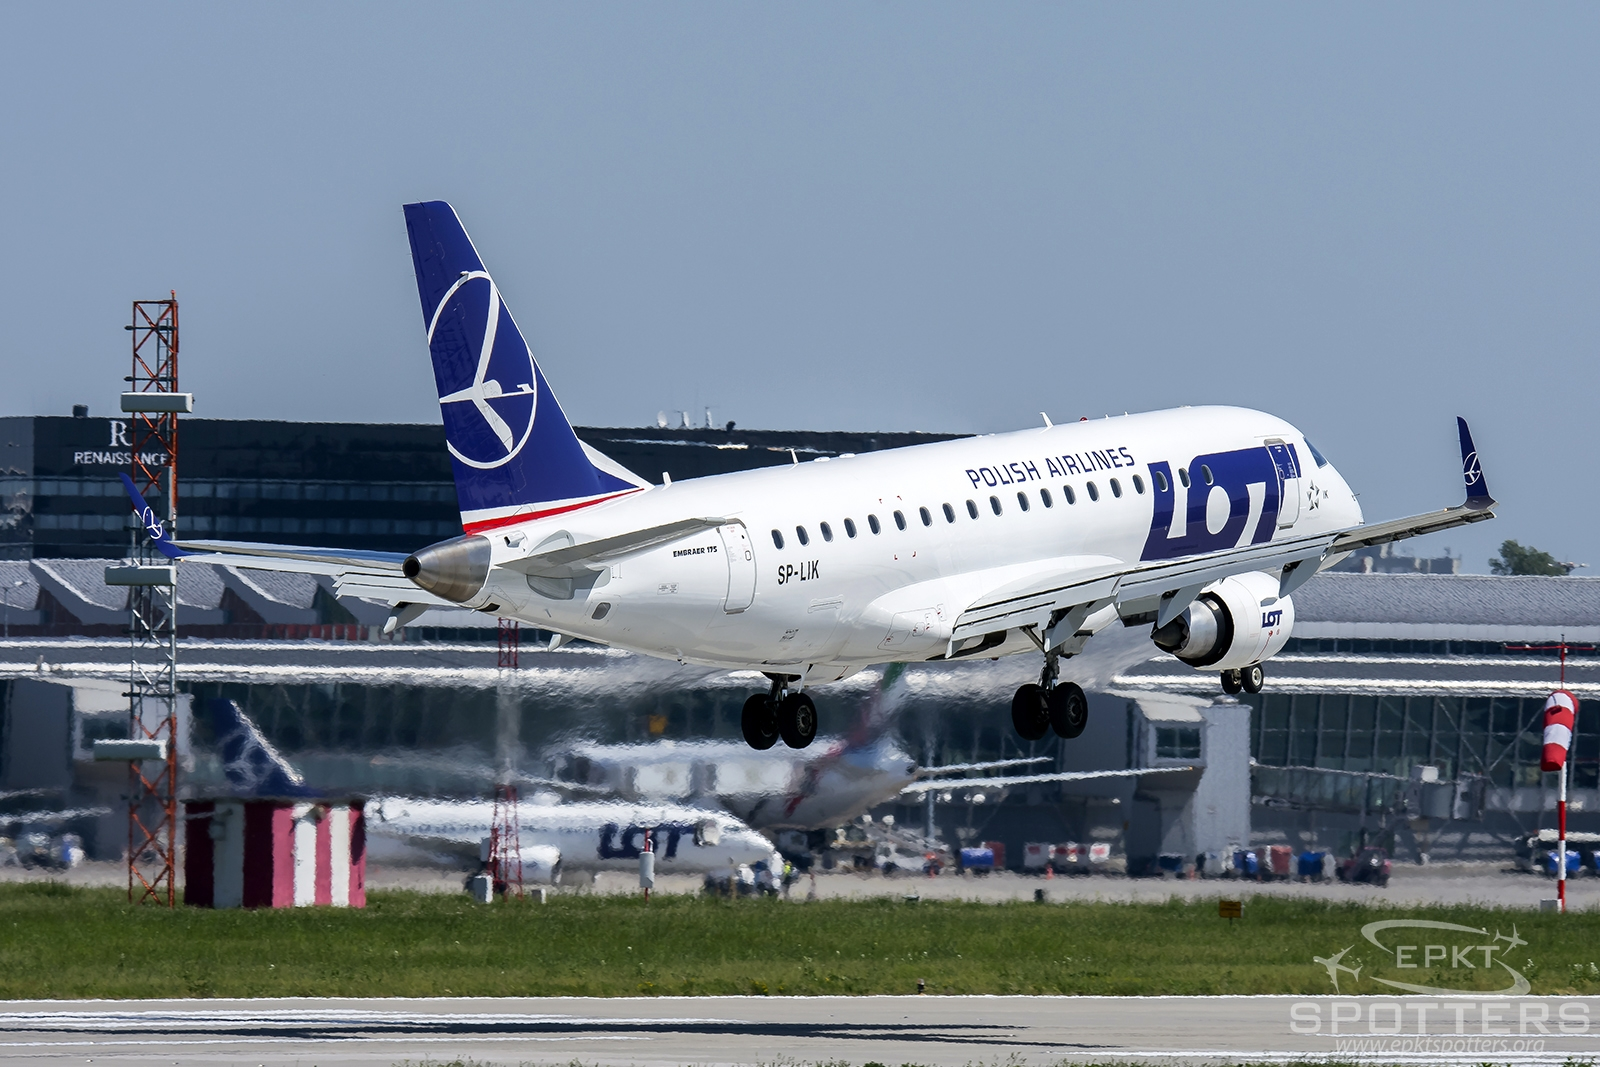 SP-LIK - Embraer 170 -200LR (LOT Polish Airlines) / Chopin / Okecie - Warsaw Poland [EPWA/WAW]